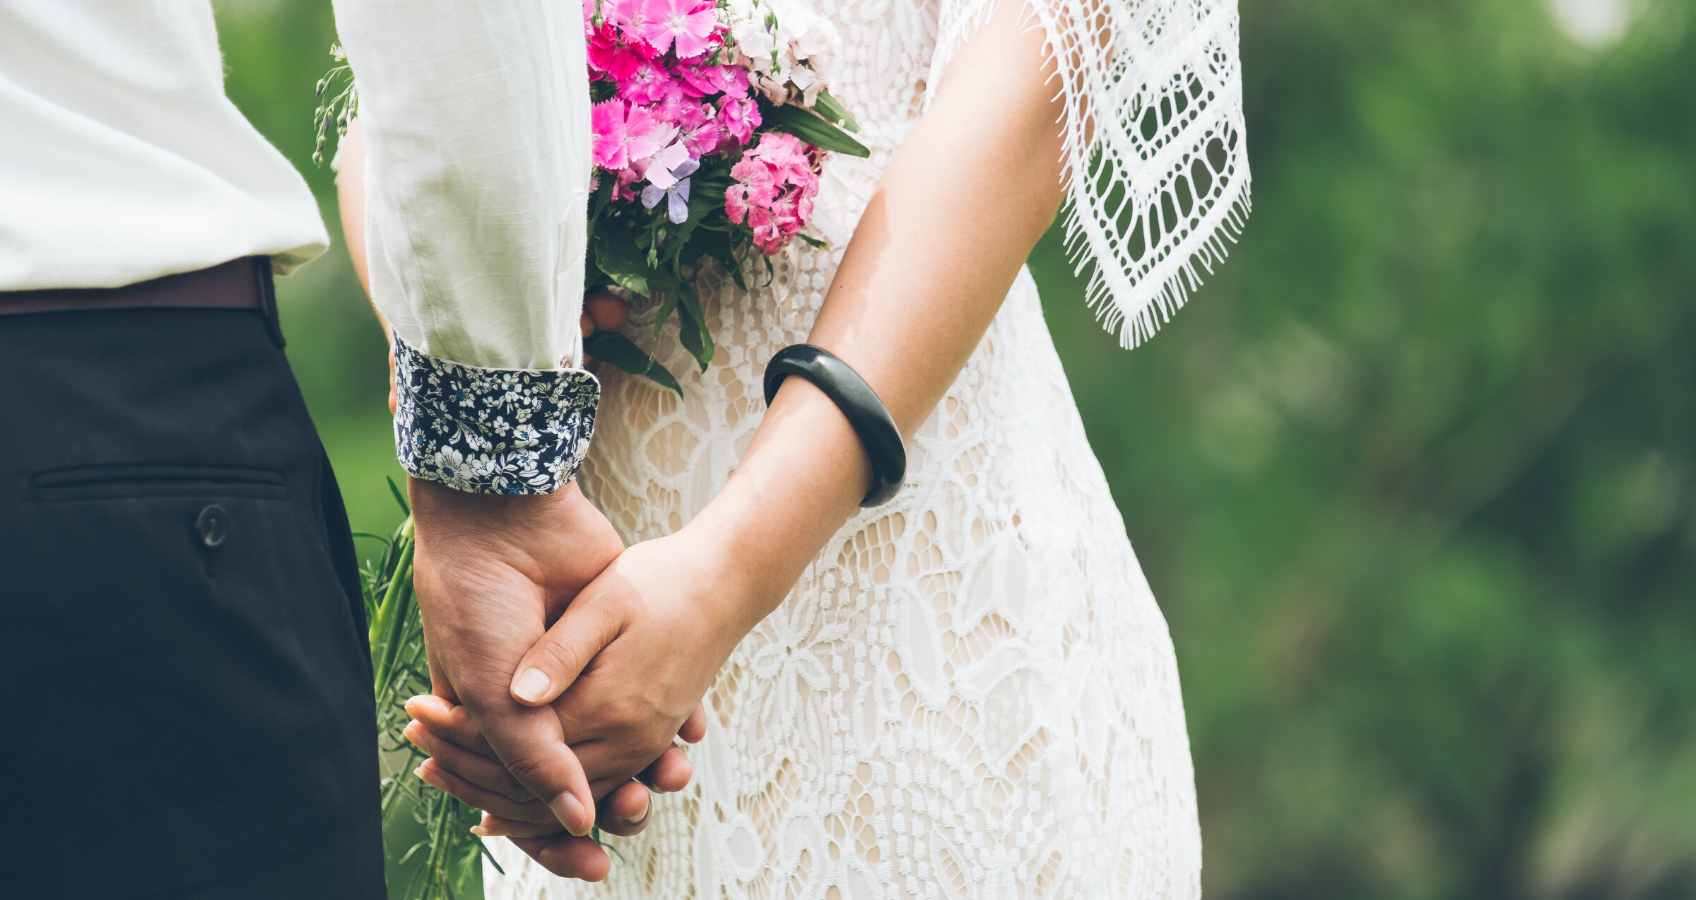 Weddings are back on as gatherings of up to 100 people allowed From July 20